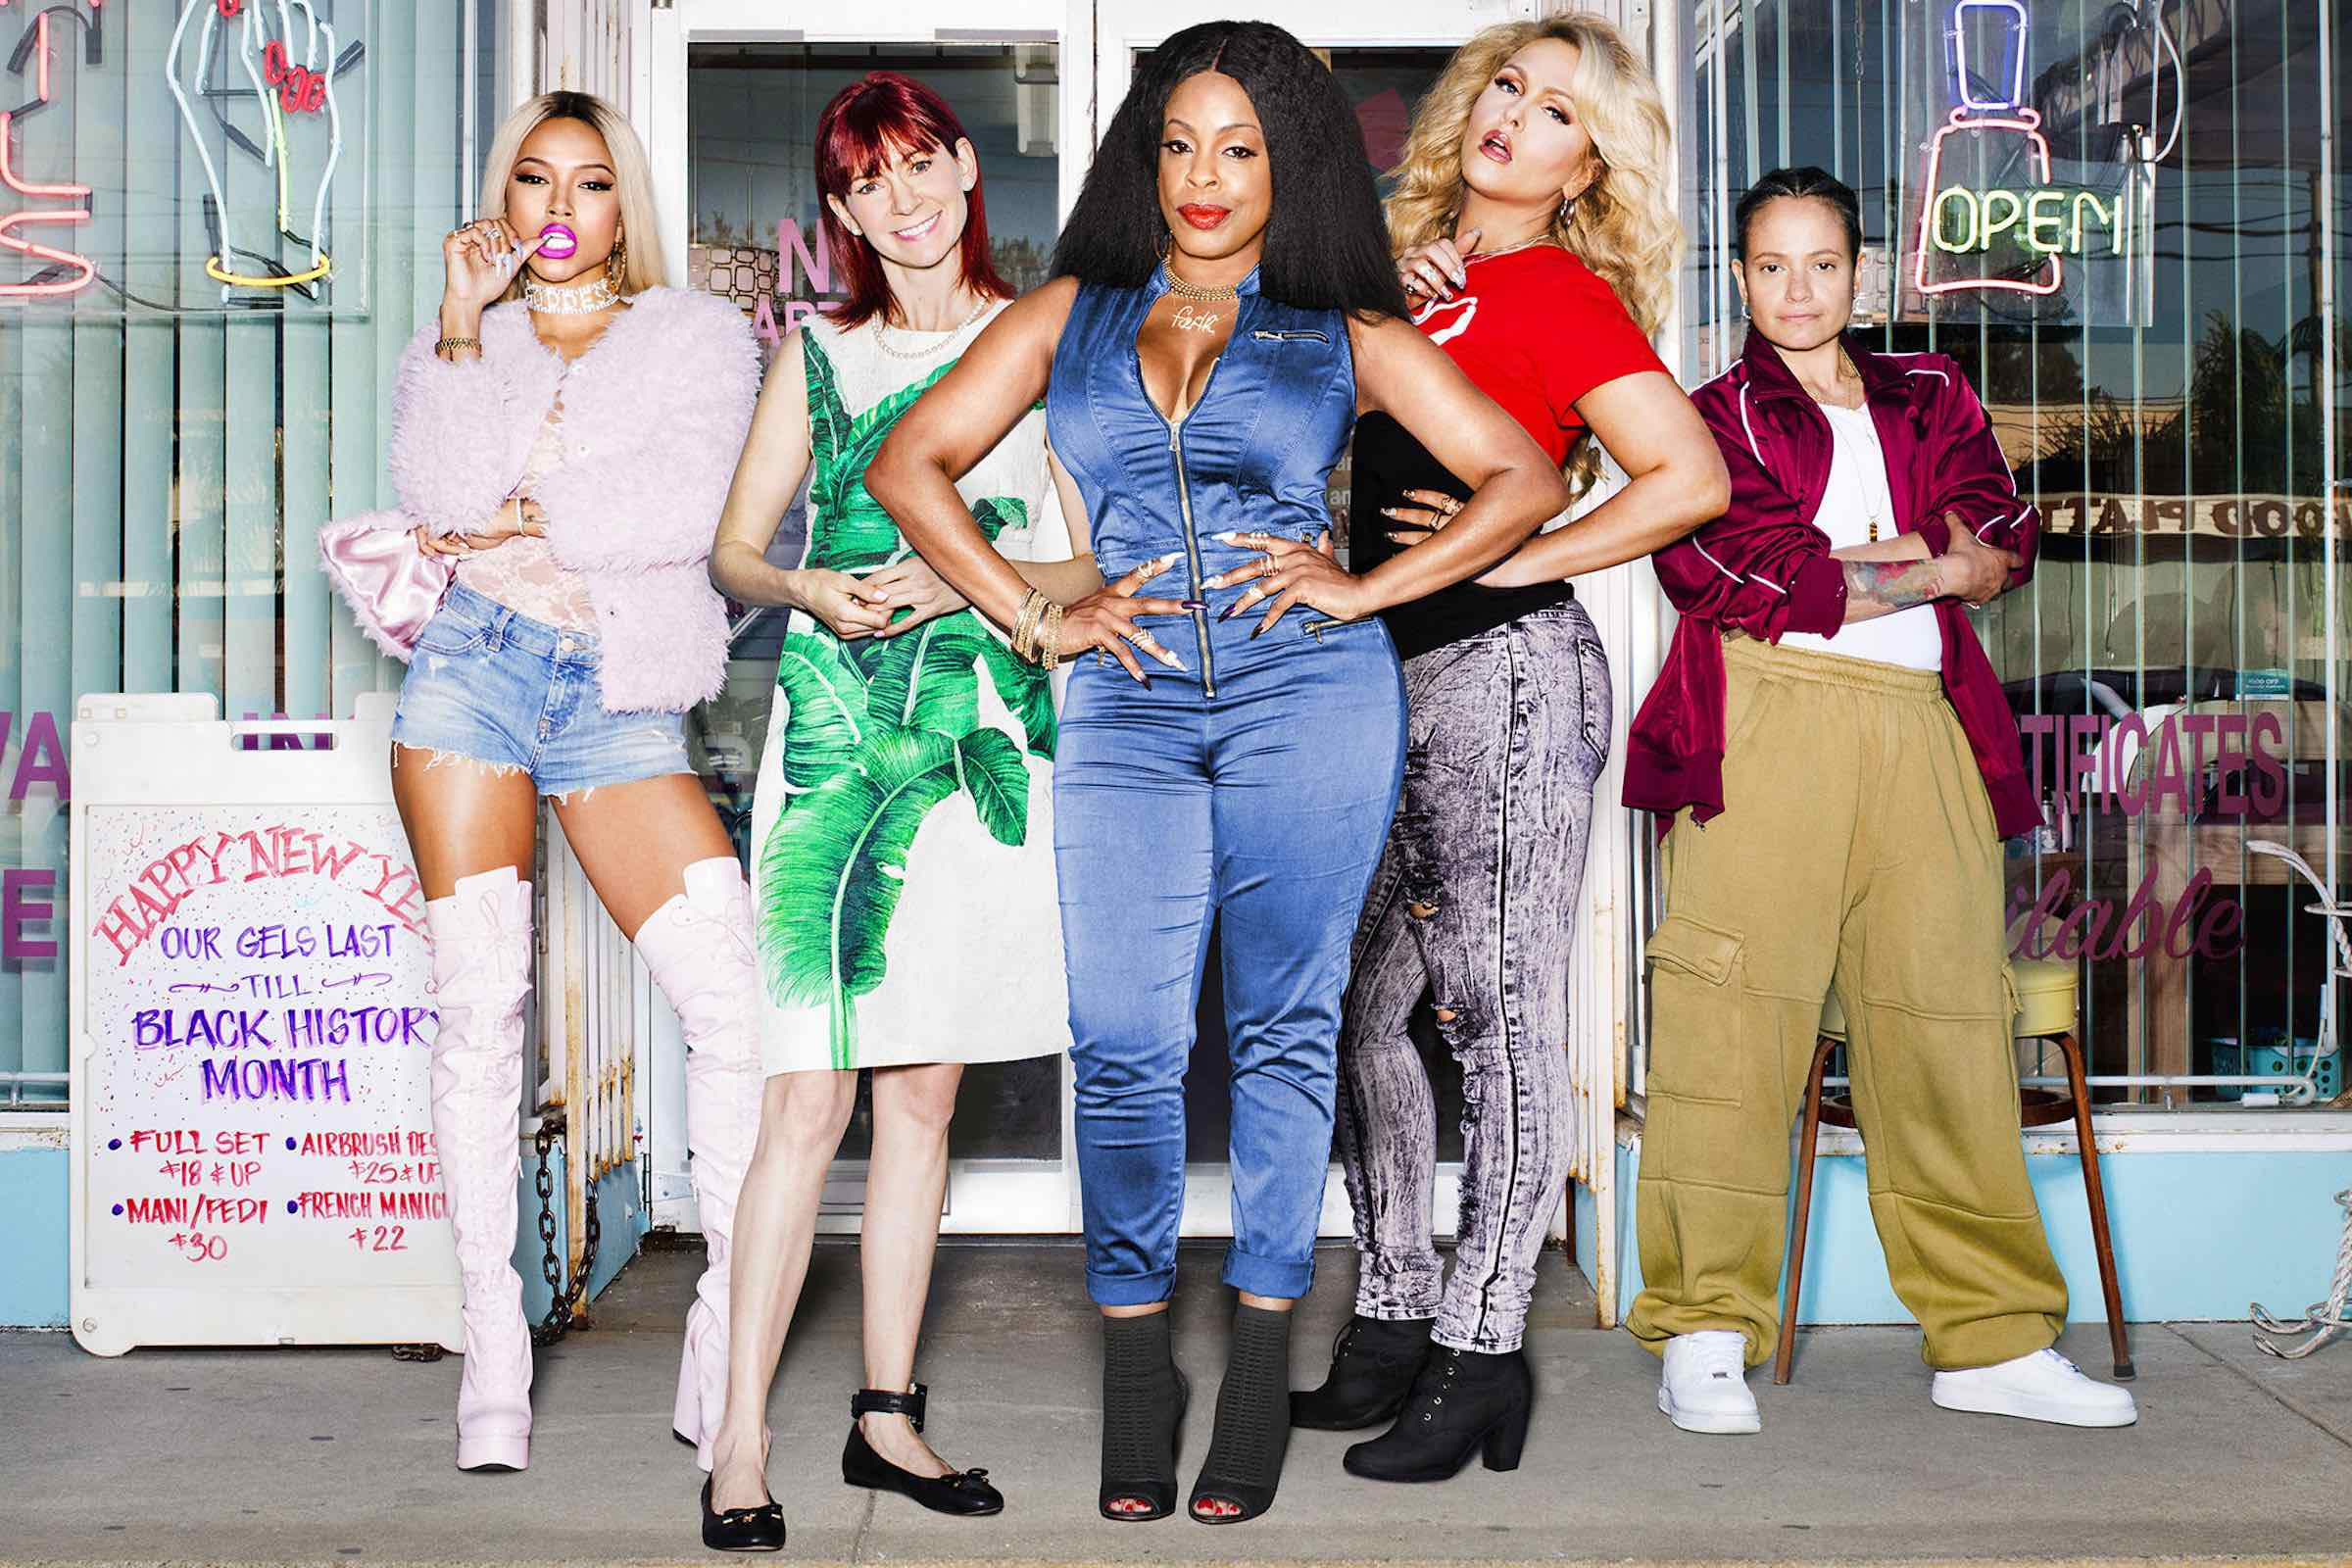 Your appointment at the nail salon has been booked! Season three of TNT's gloriously garish crime drama 'Claws' is set to drop on June 9.